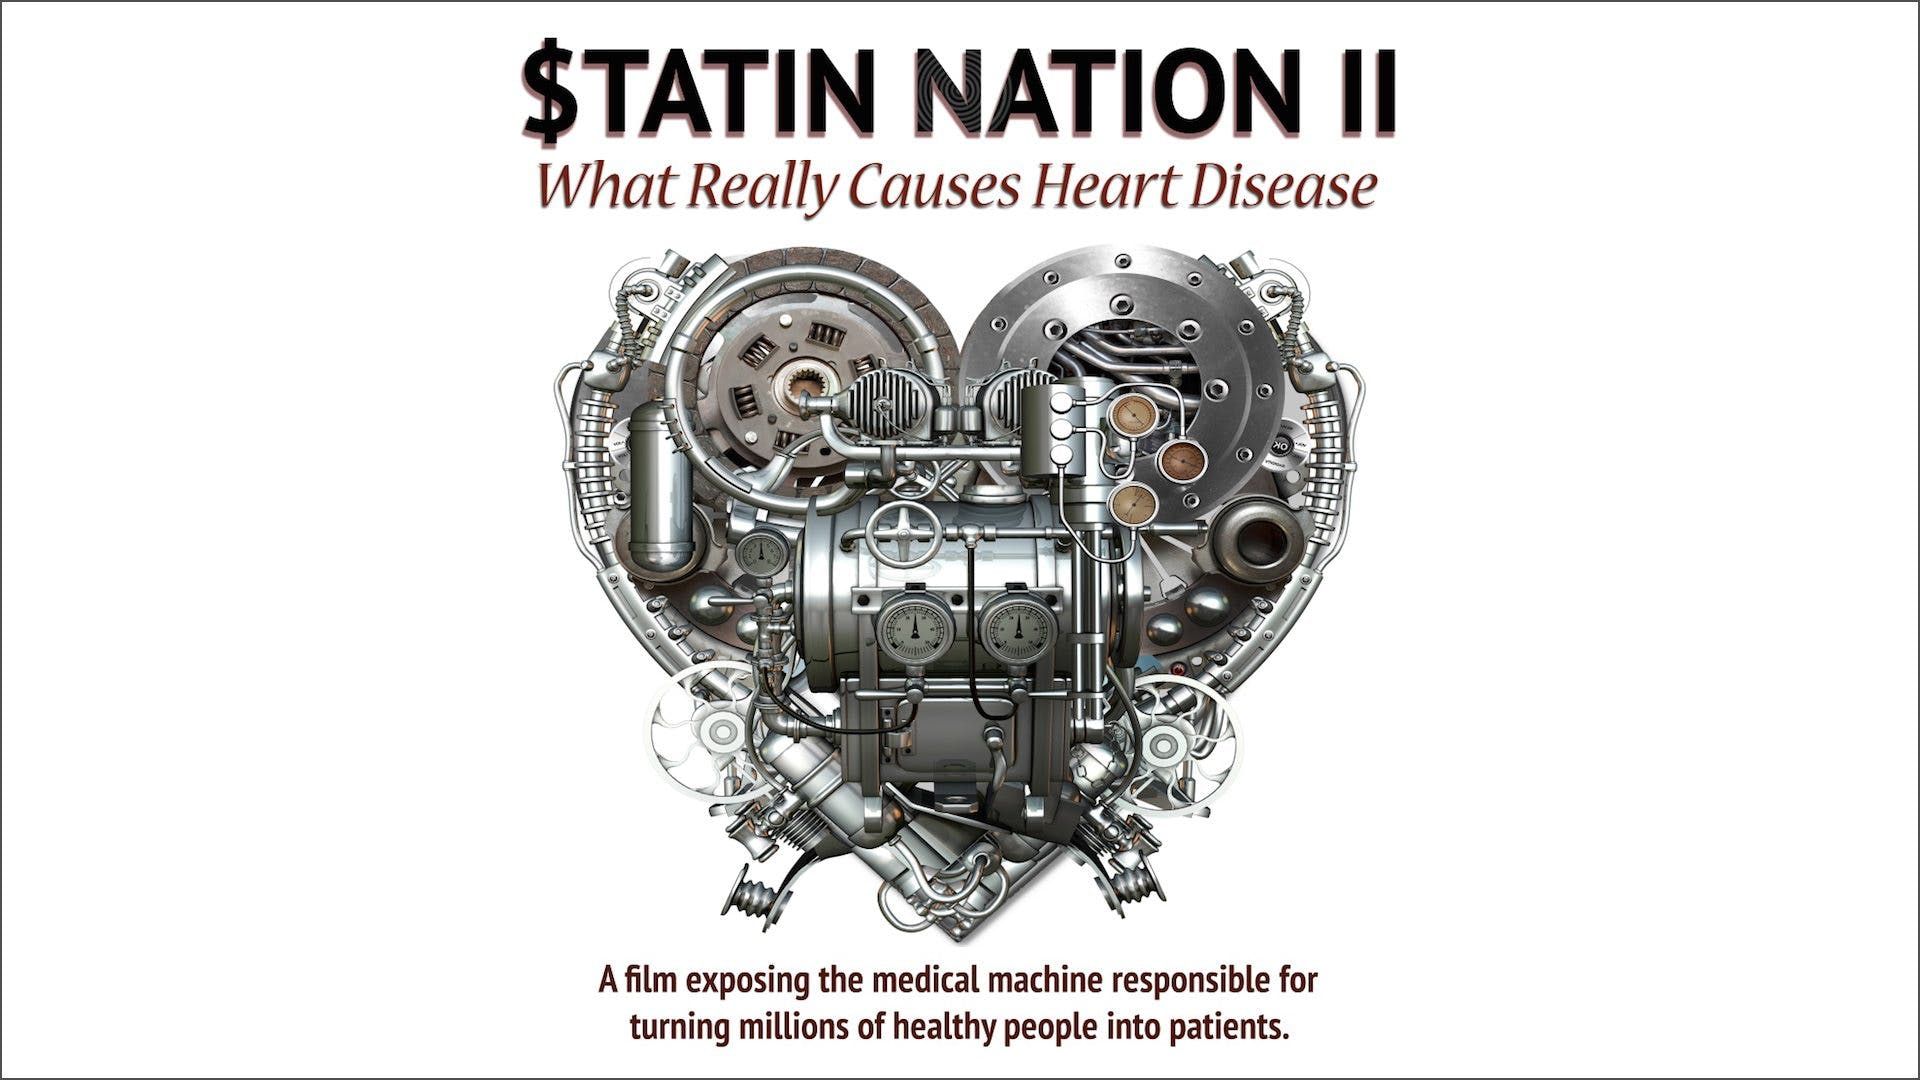 Statin Nation II